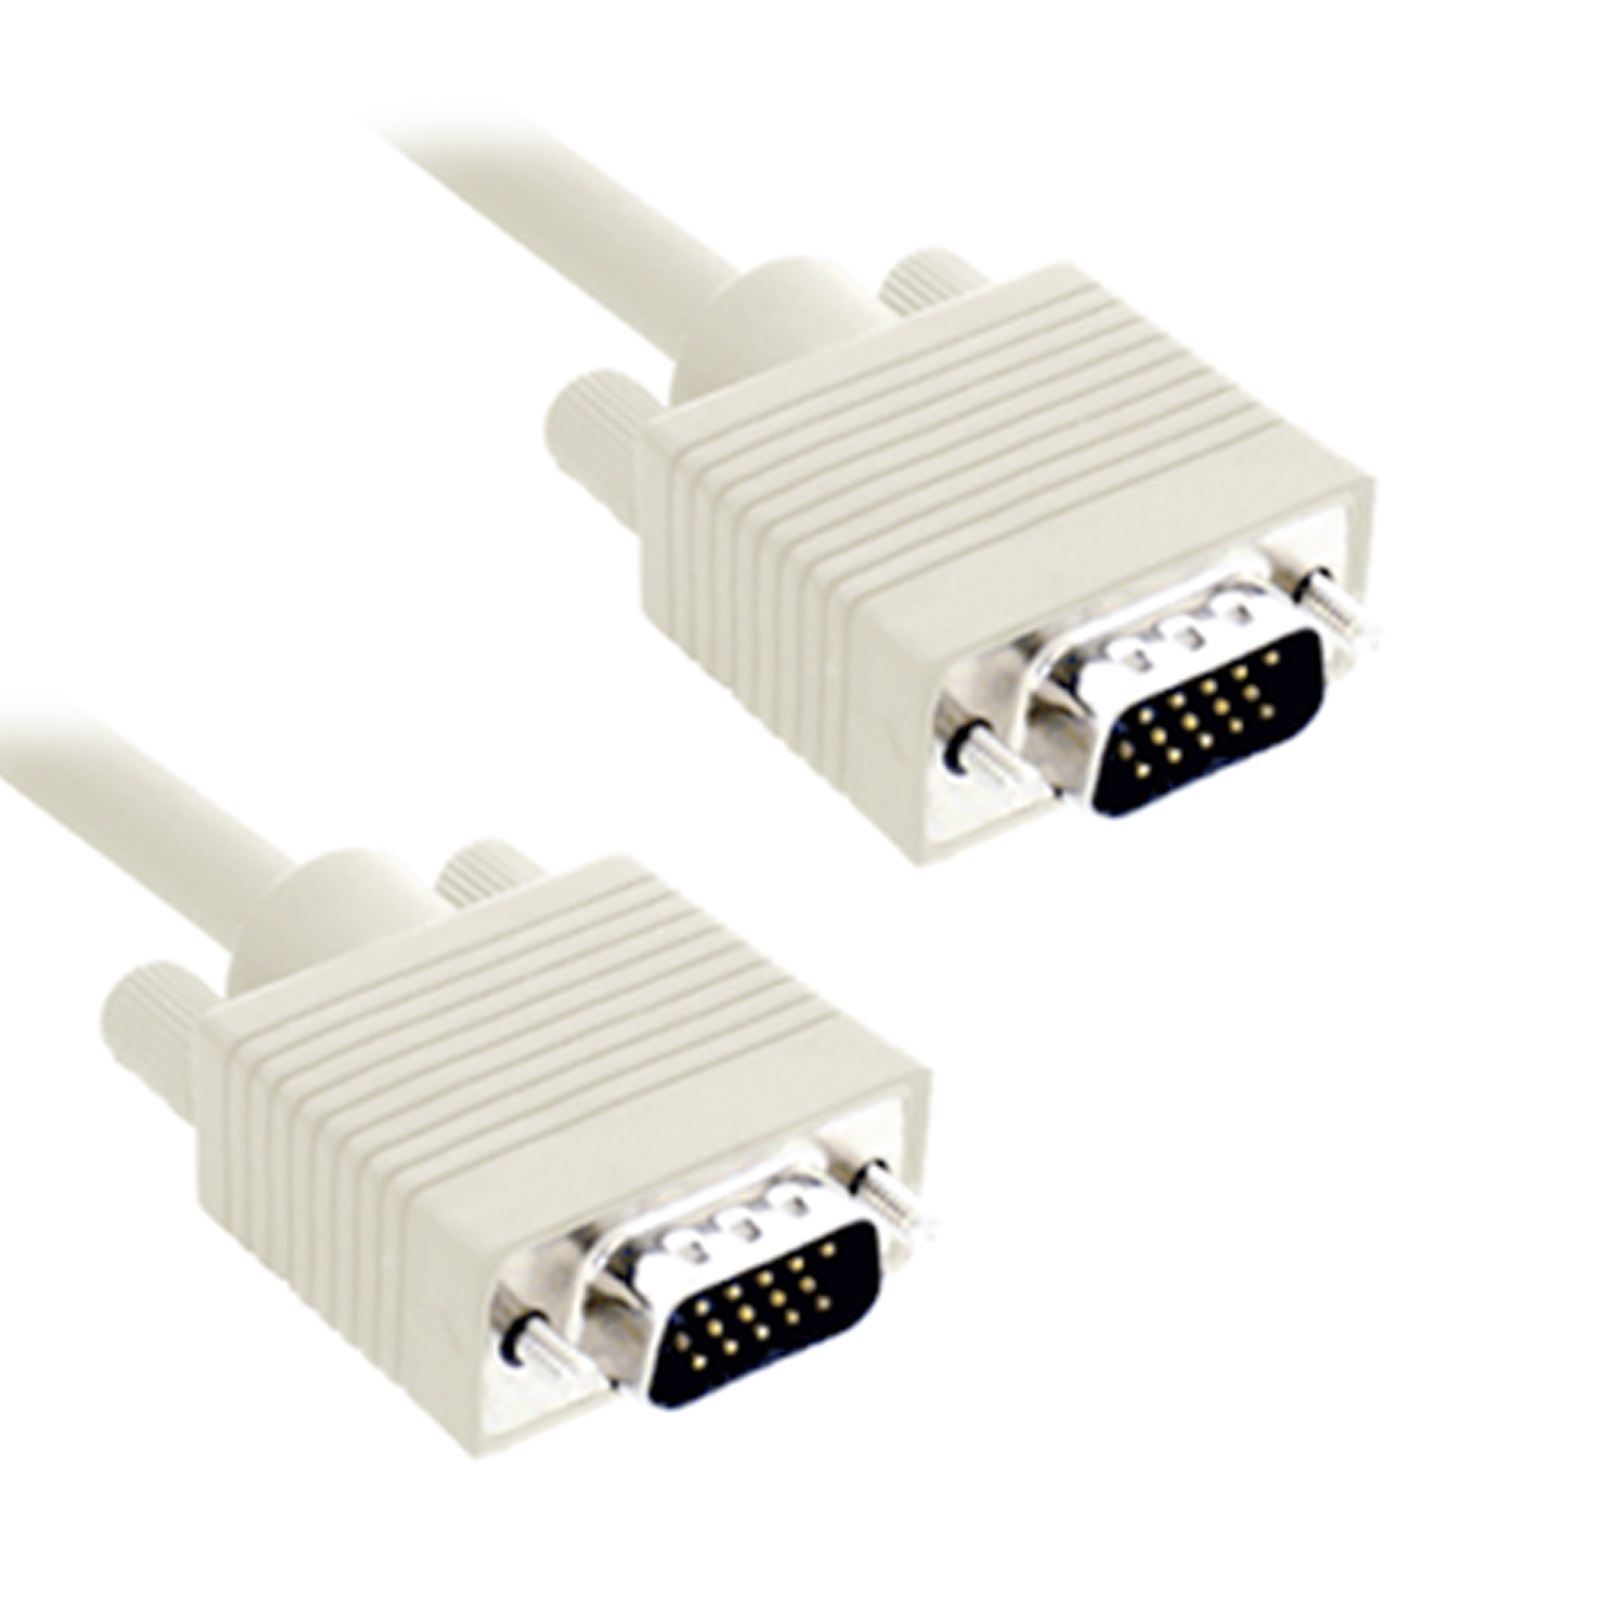 Vga Cable Male To Male OD 8MM 3m